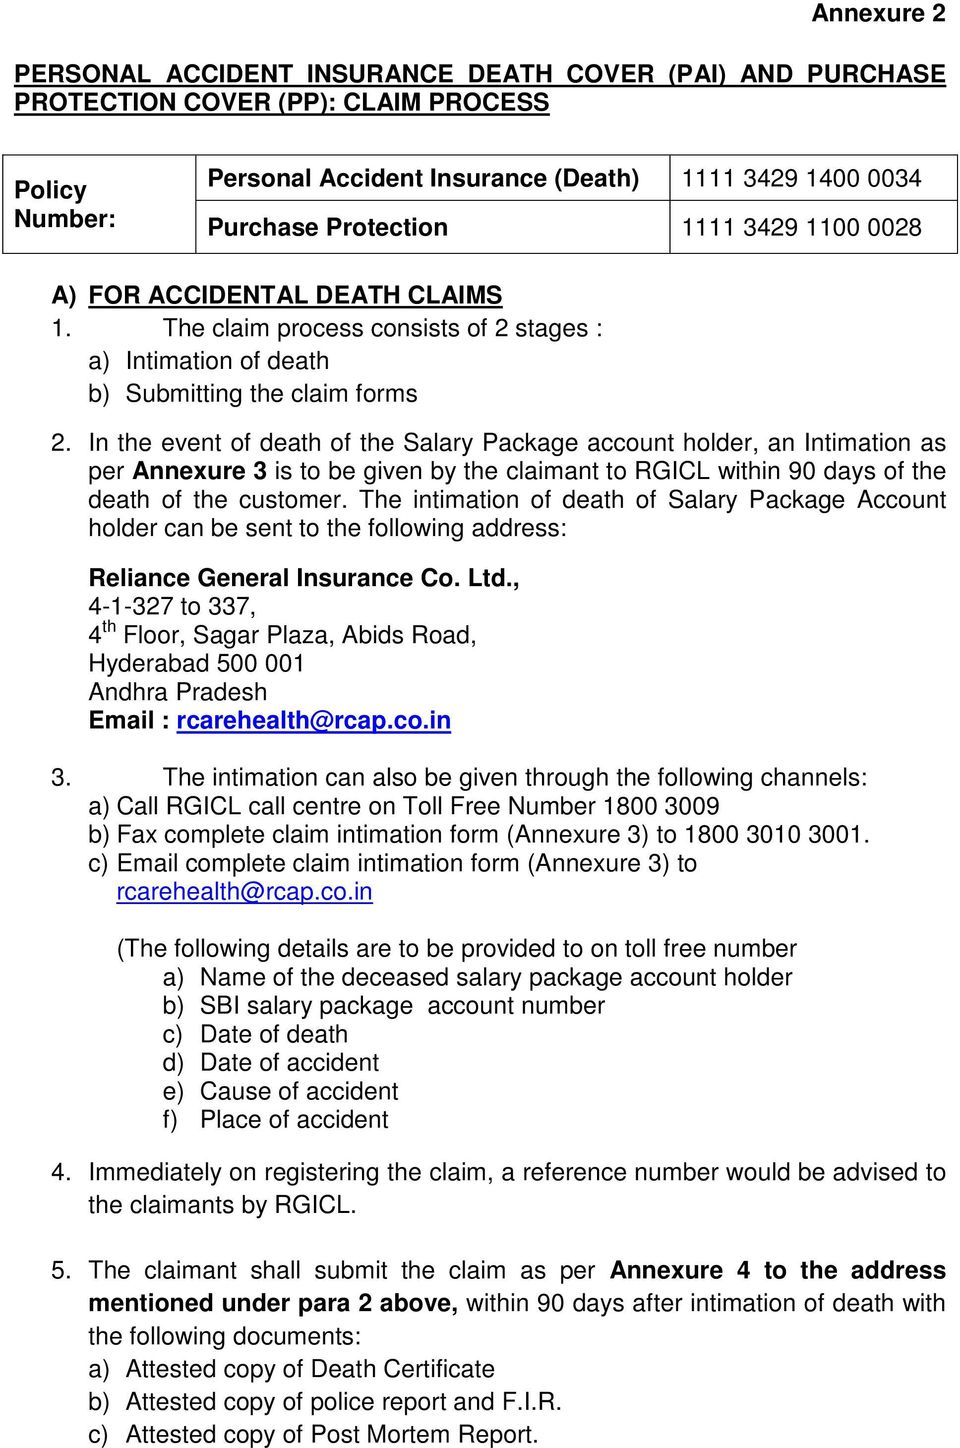 In the event of death of the Salary Package account holder, an Intimation as per Annexure 3 is to be given by the claimant to RGICL within 90 days of the death of the customer.